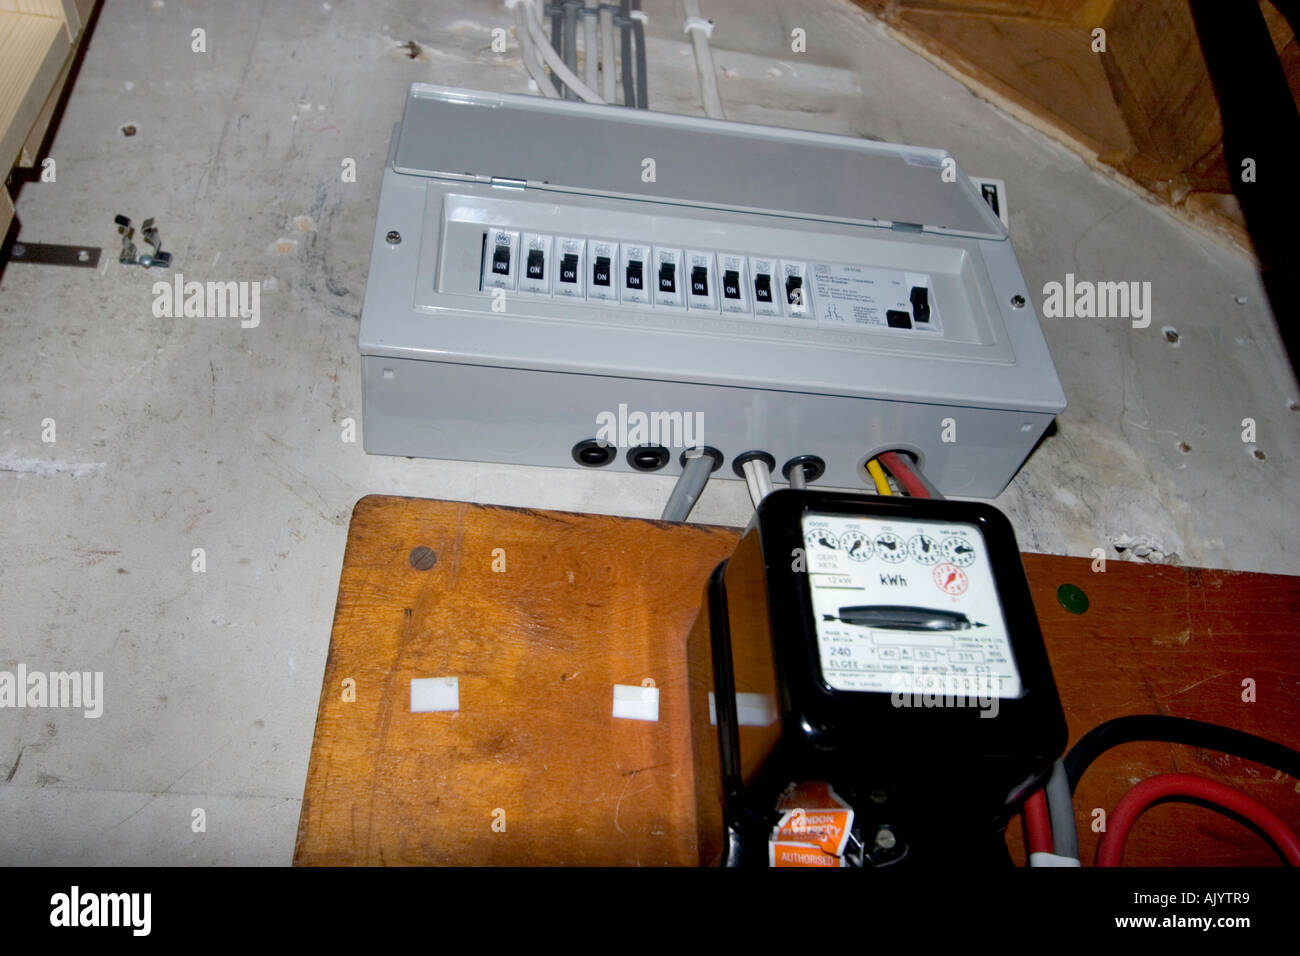 uk electrical fuse box under stairs of house with standard stock rh alamy com home electrical fuse box diagram Electrical Switches and Fuse Boxes